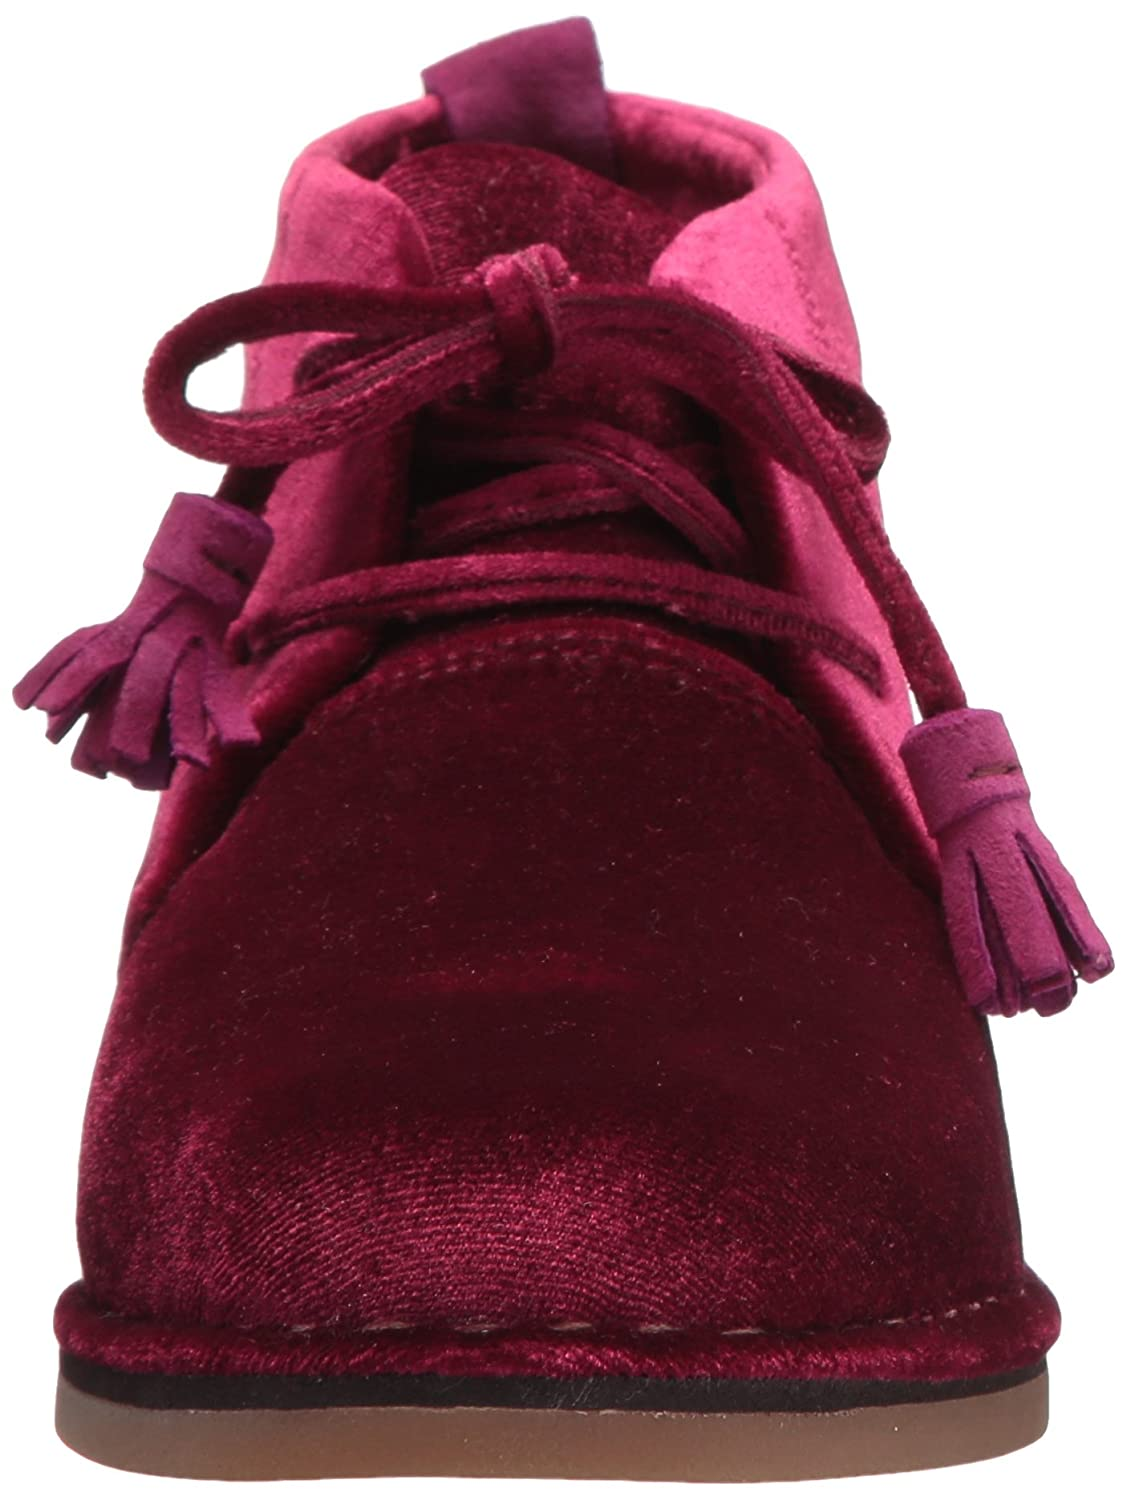 Hush Puppies Women's Cyra Catelyn Ankle Boot B06WCZ6BSQ 10 W US|Wine